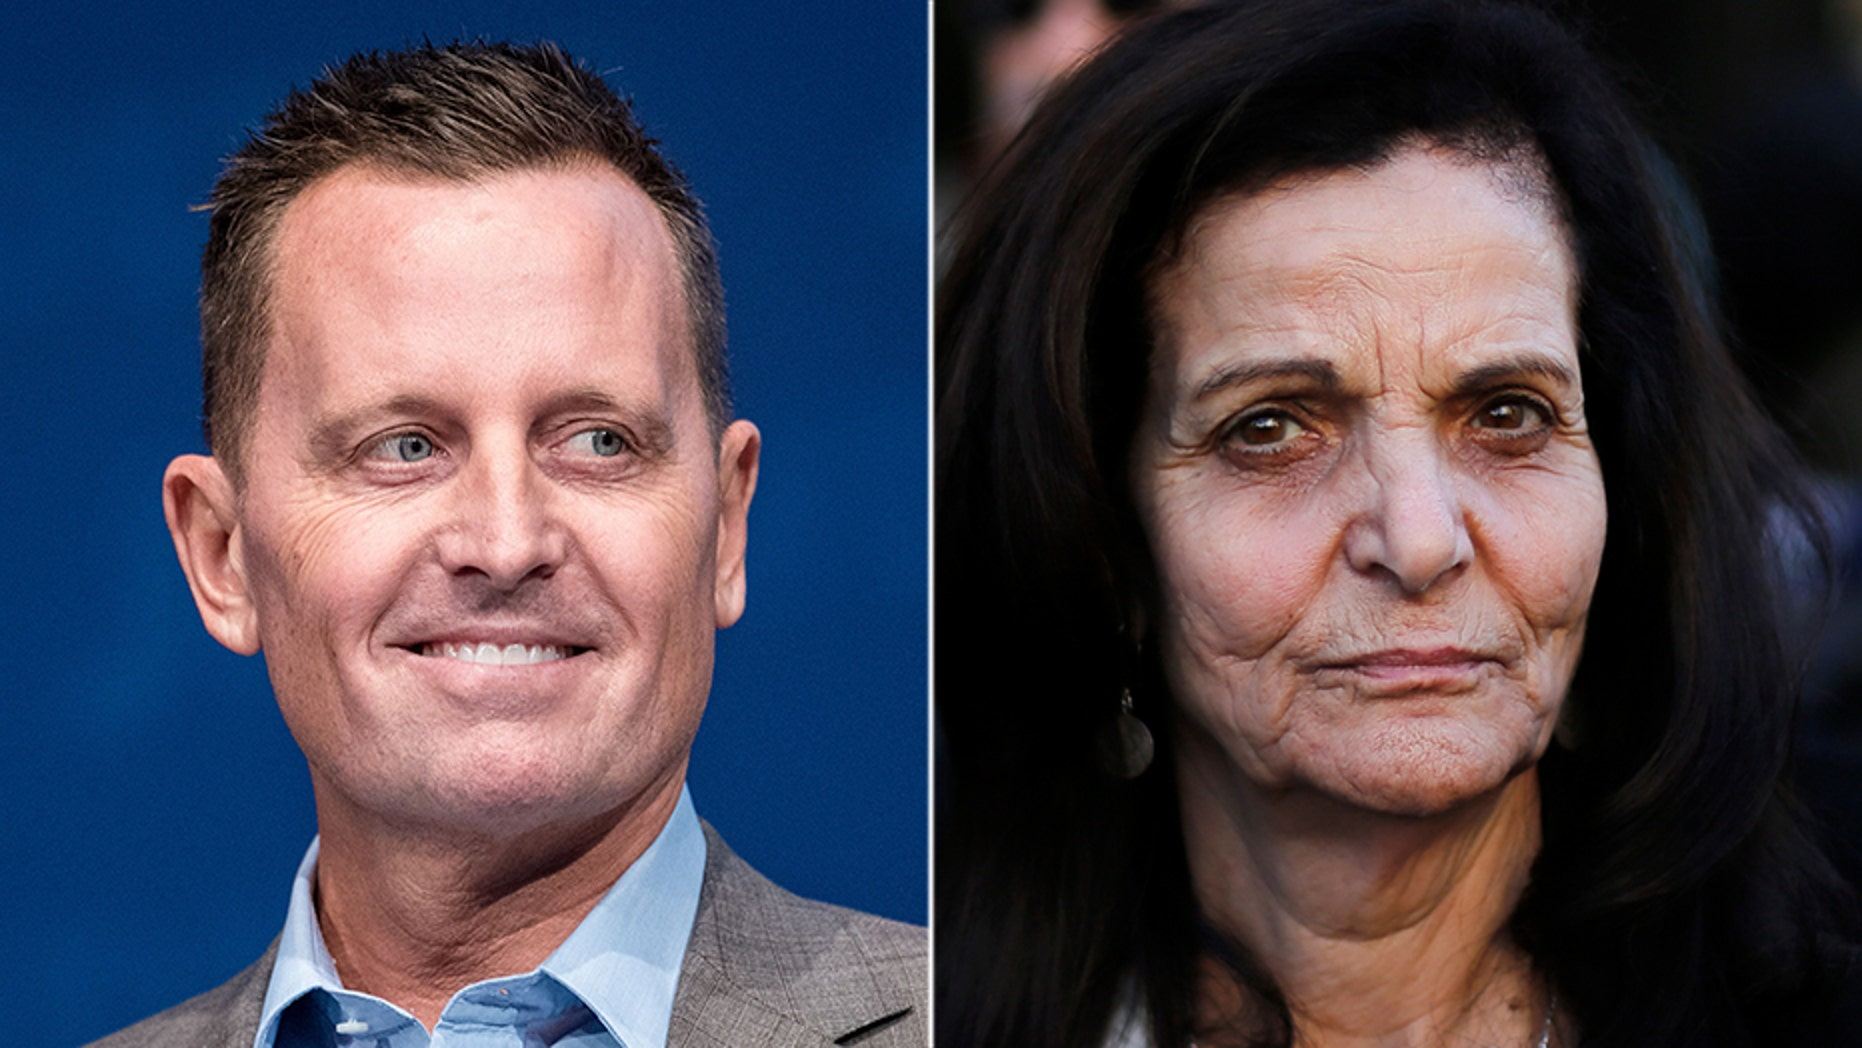 Richard Grenell (left) has spoken out against the decision to allow Rasmea Odeh (right) to speak at a talk in Berlin.